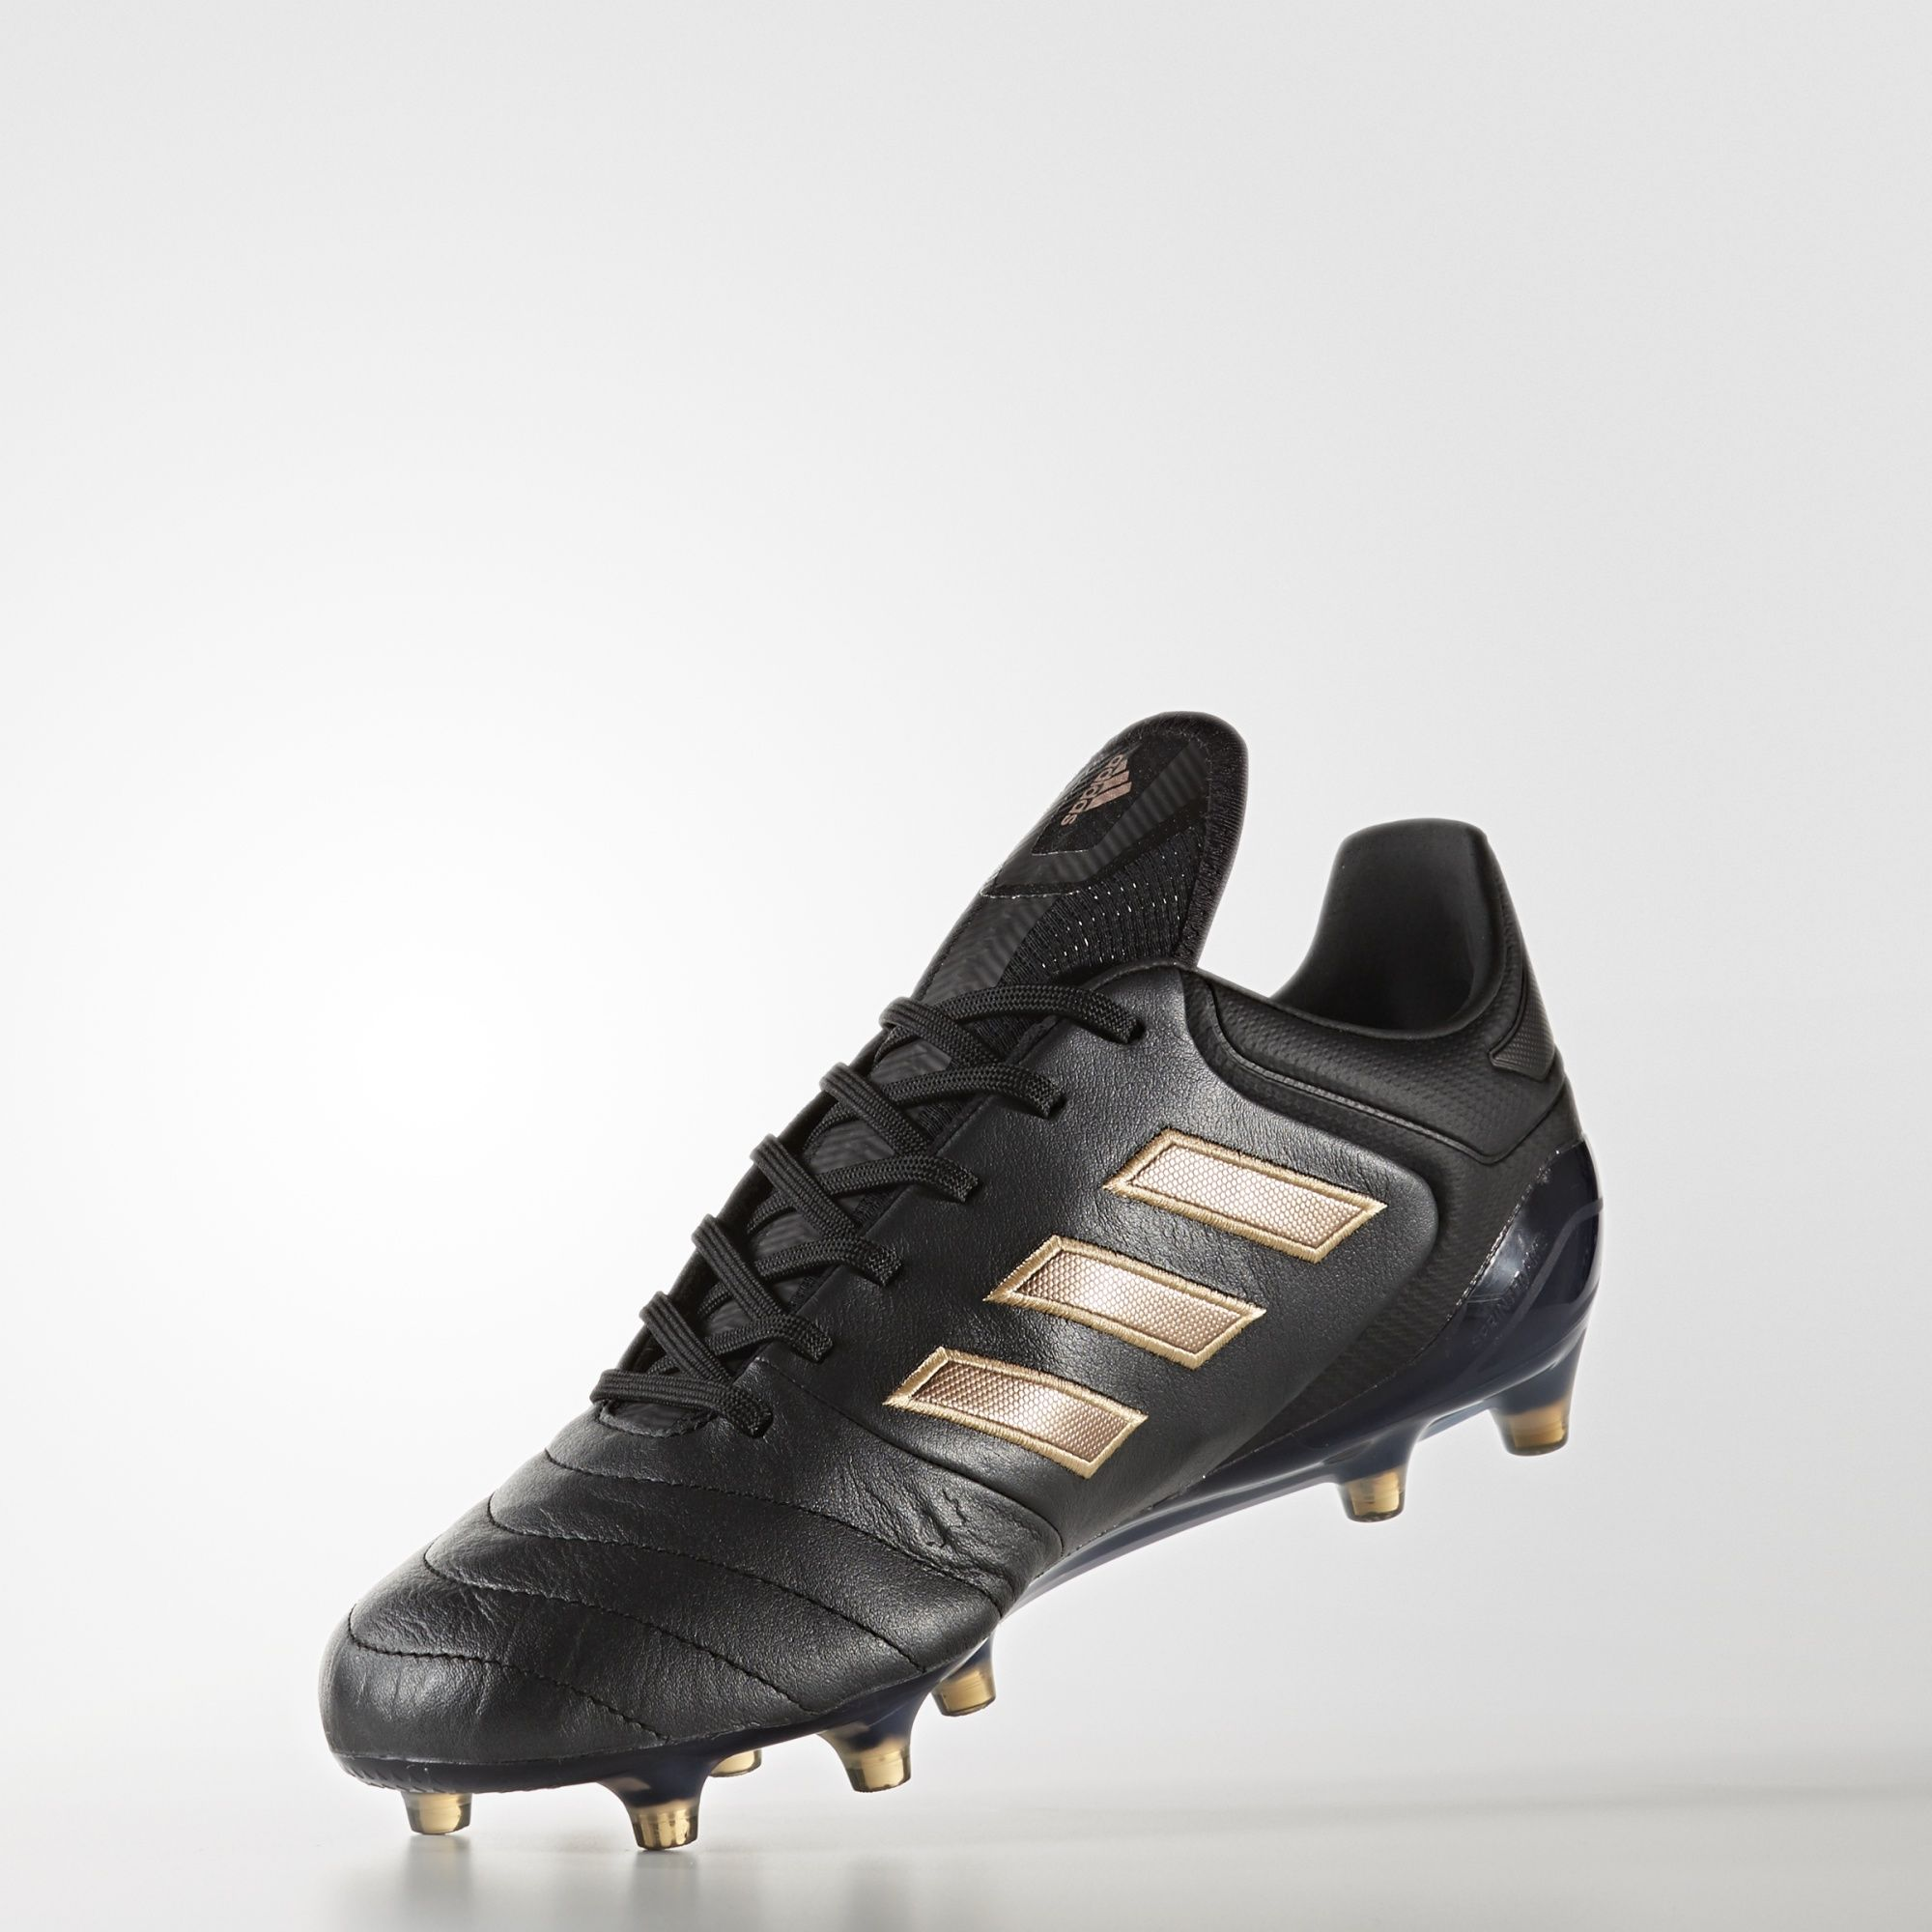 2df29c972 ... Click to enlarge image  adidas_copa_17_1_turbocharge_firm_ground_boots_core_black_copper_metallic_d.jpg  ...